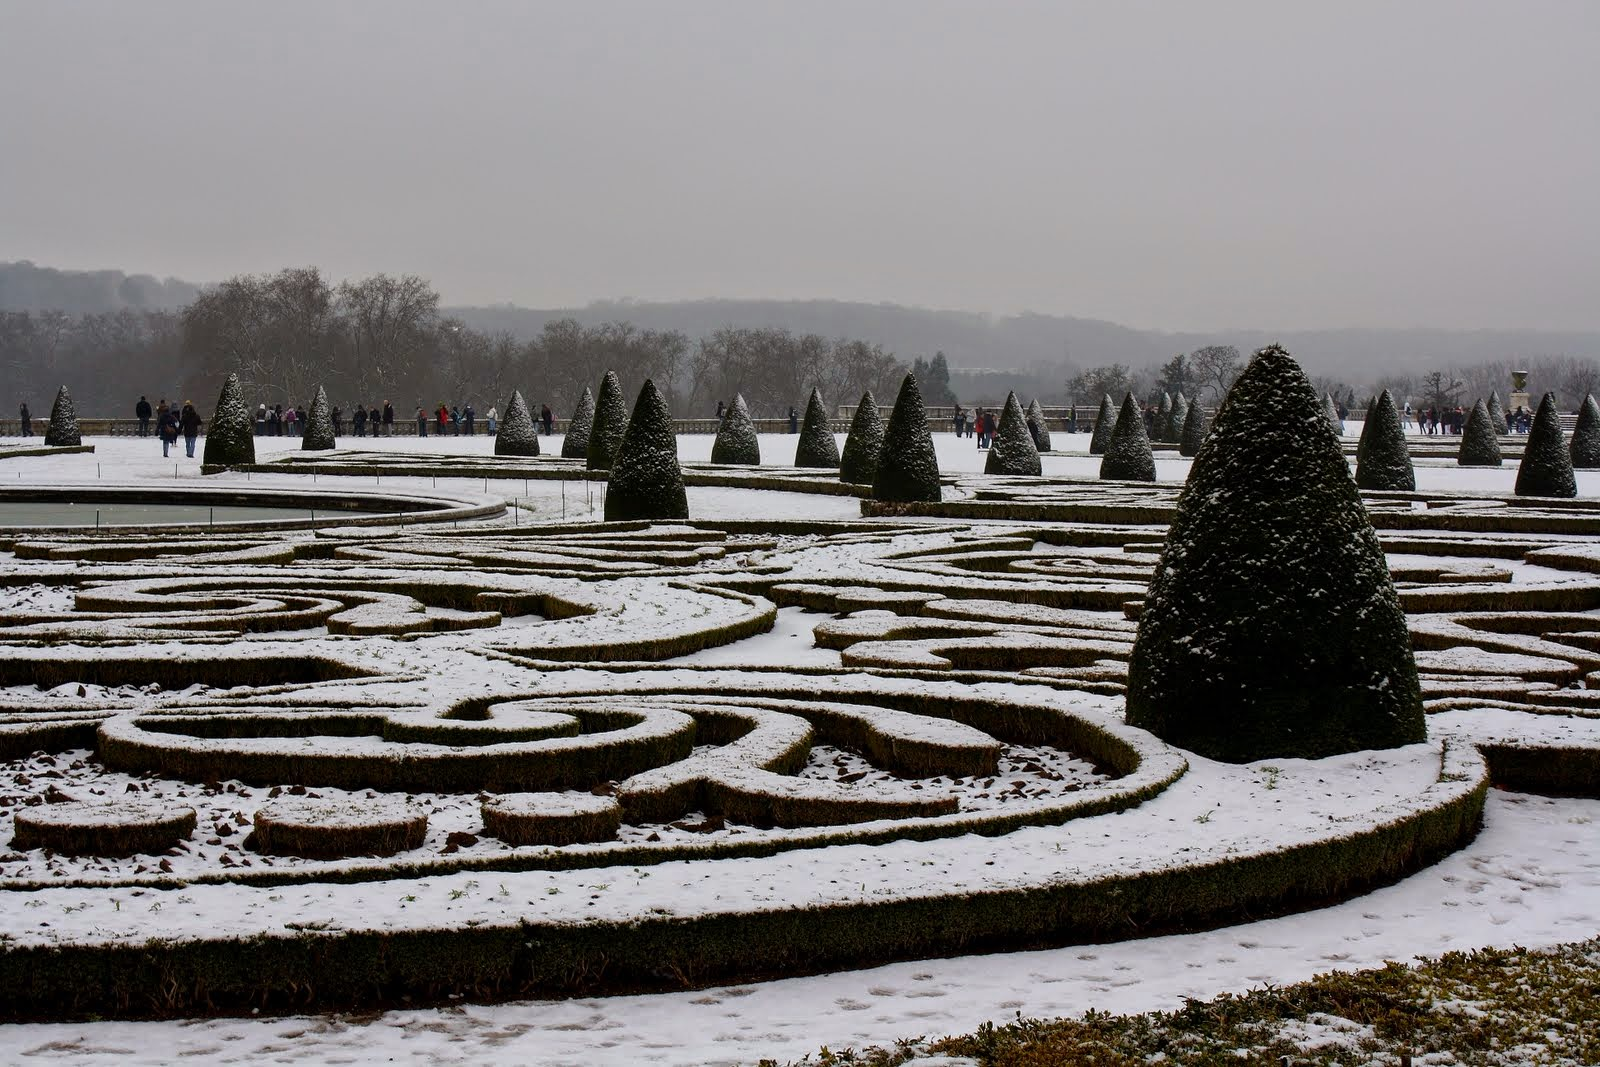 Snow on the gardens of versailles